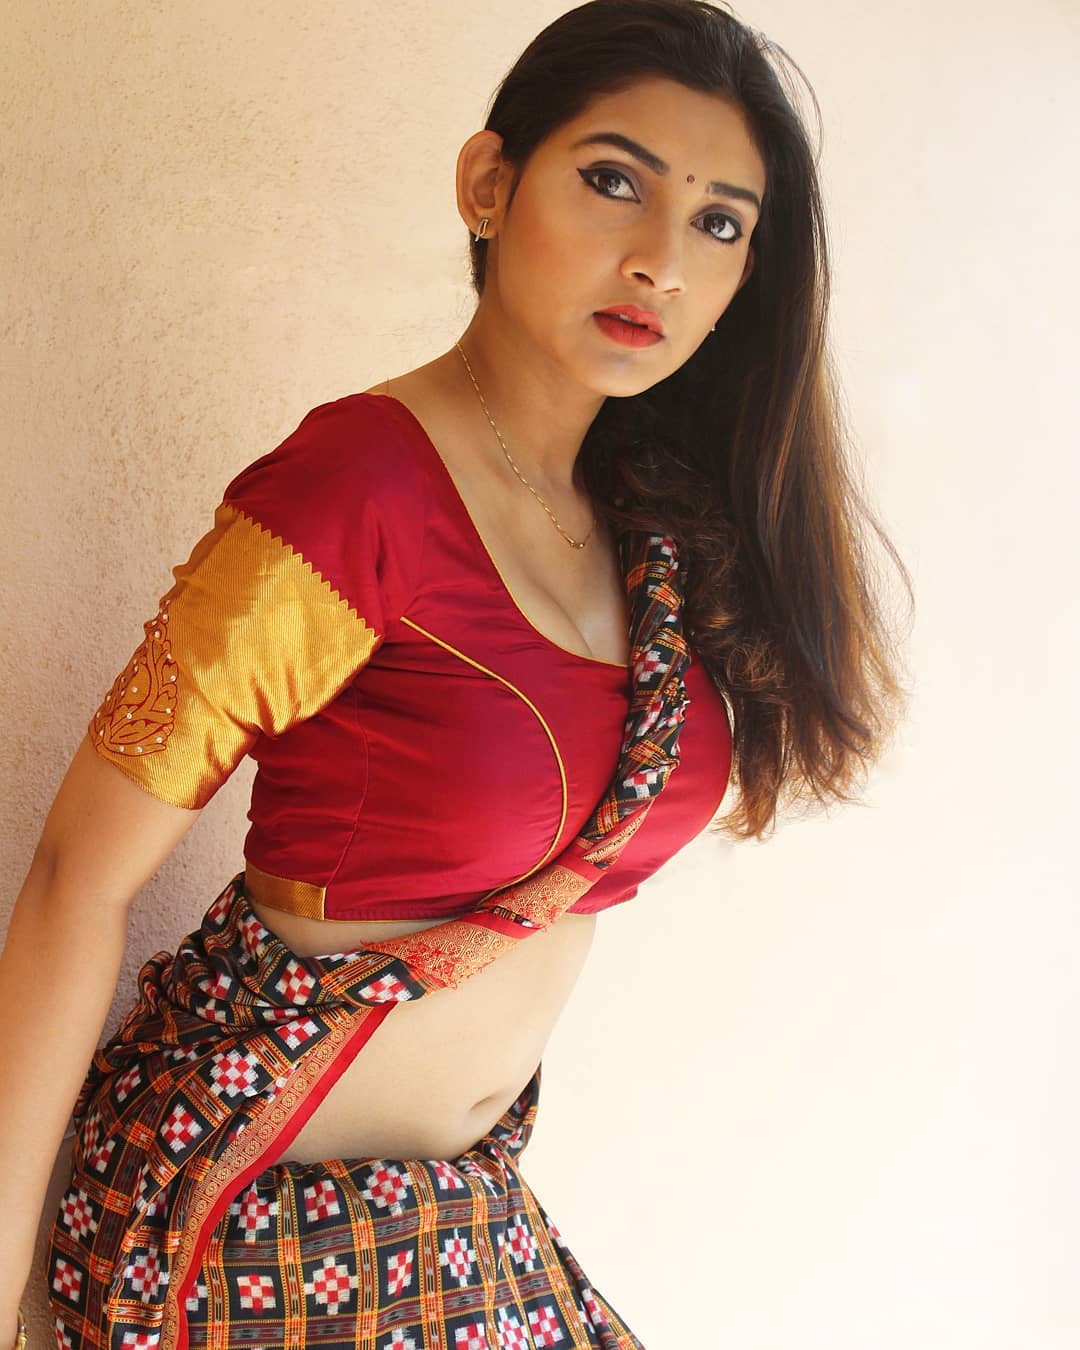 Model Biss Hot Saree Photoshoot Pictures